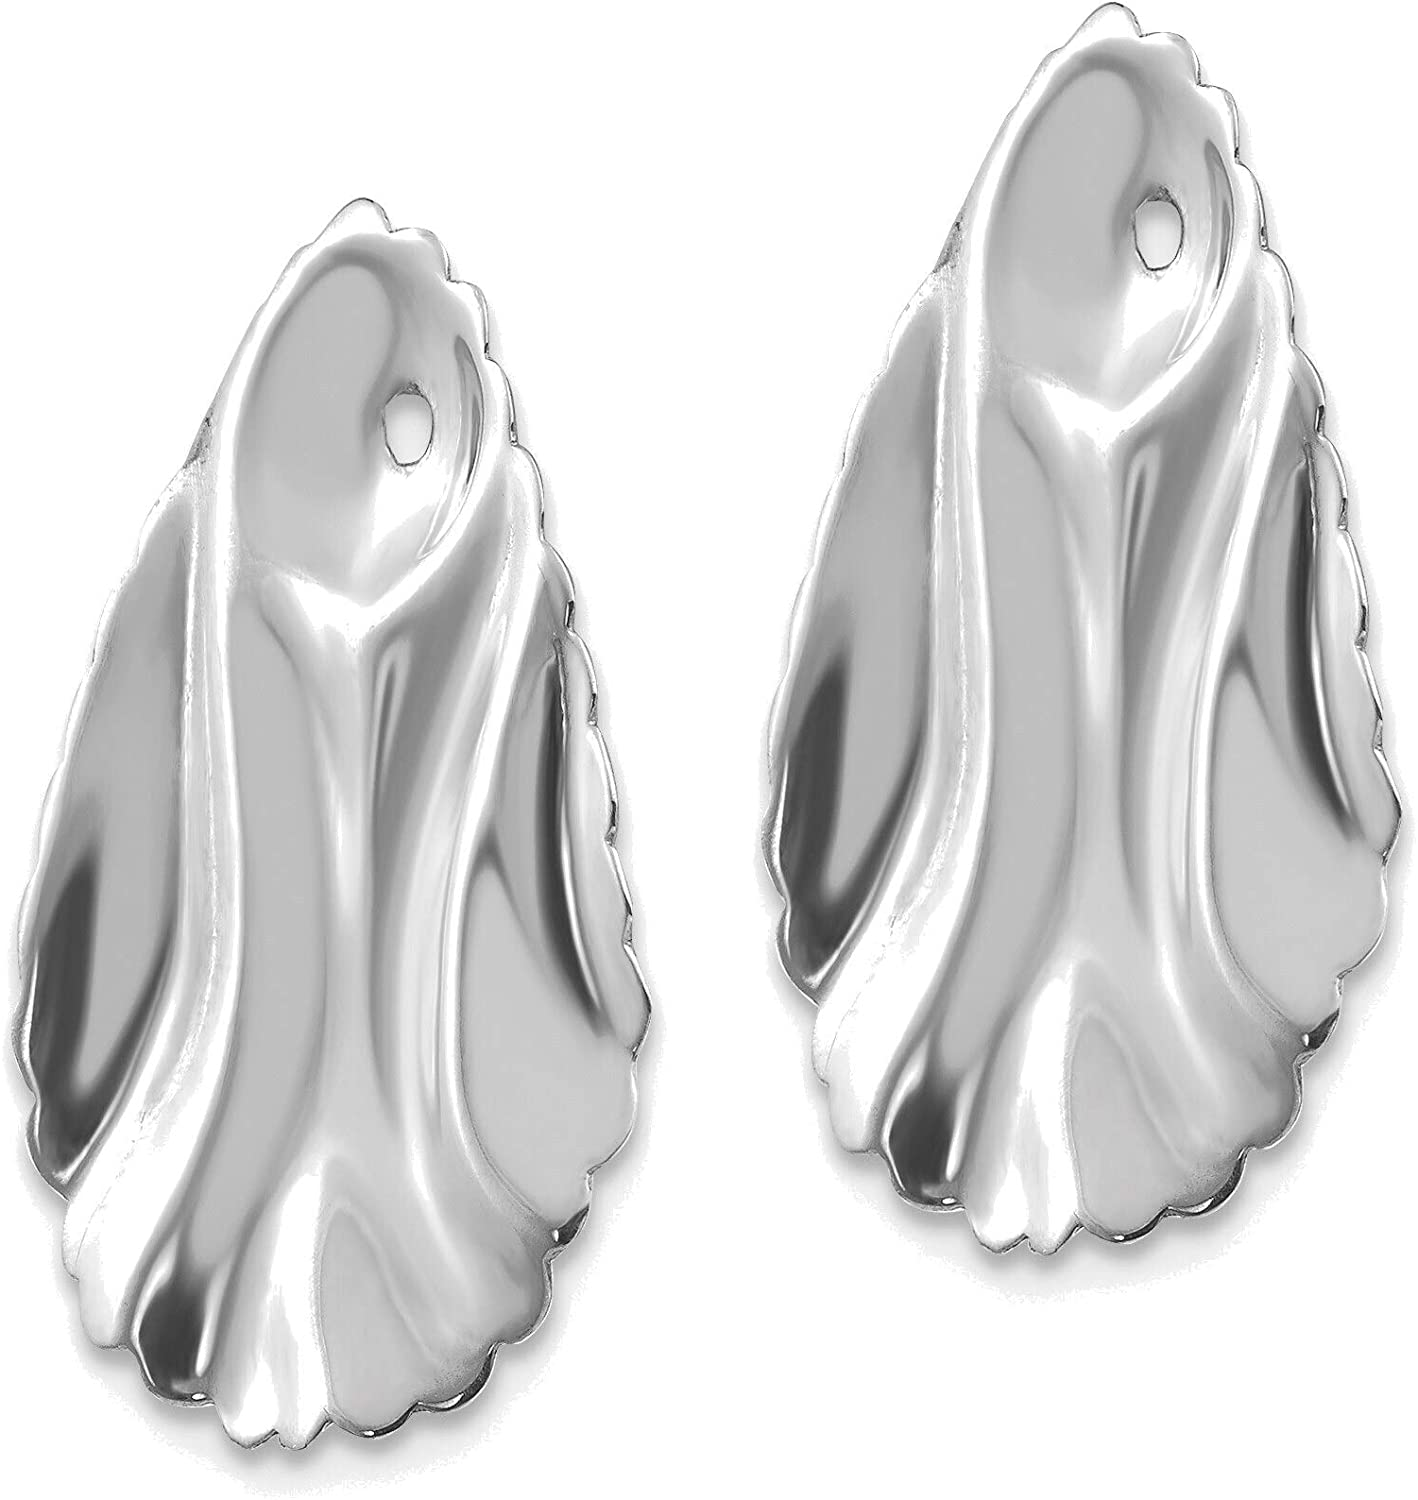 14kt White Gold Polished Hammered Oval Earring Jackets